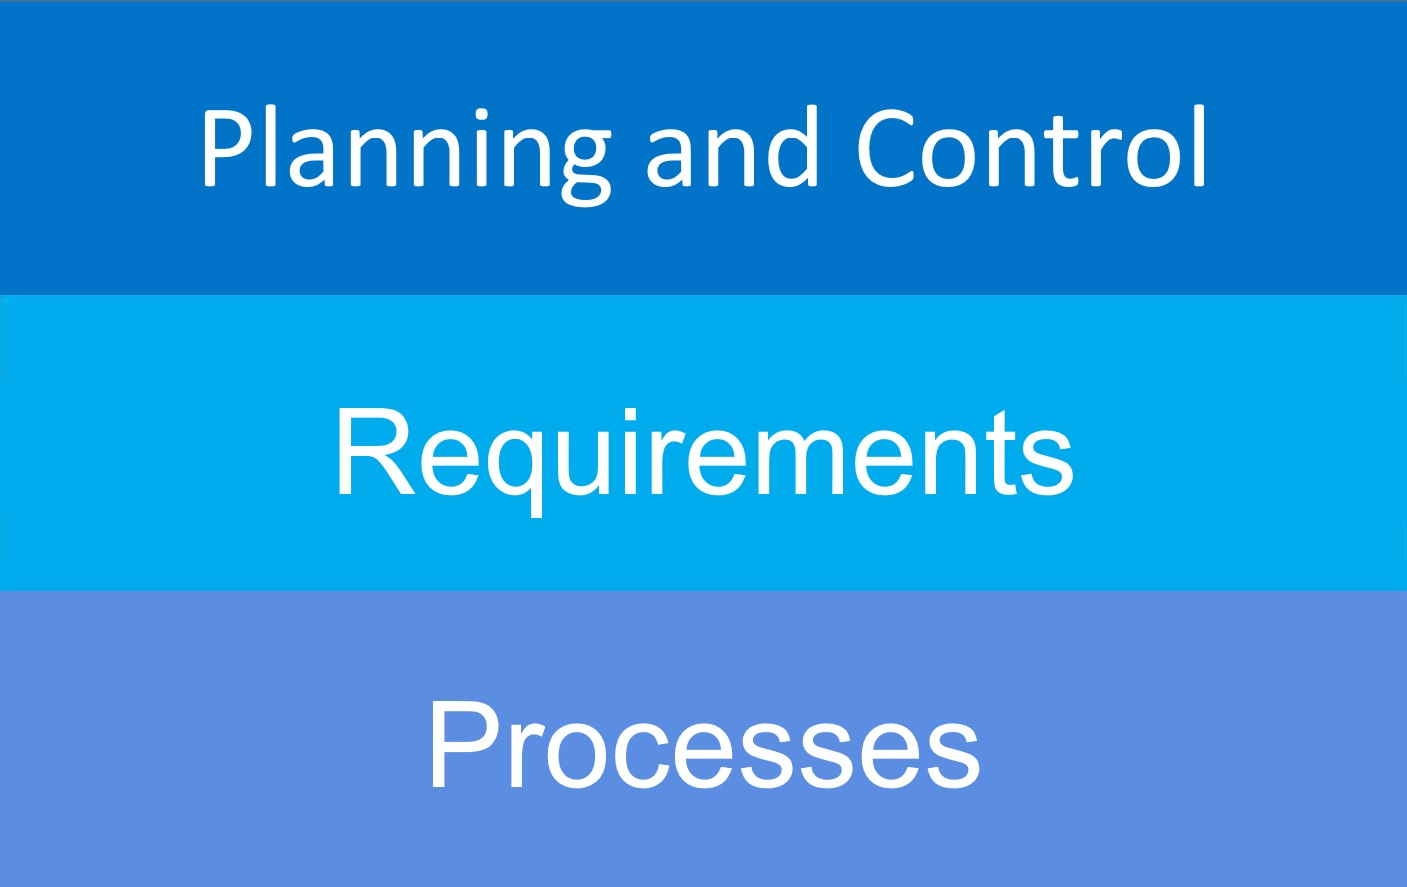 Project management at t2informatik in Berlin: Planning and control, requirements and processes.